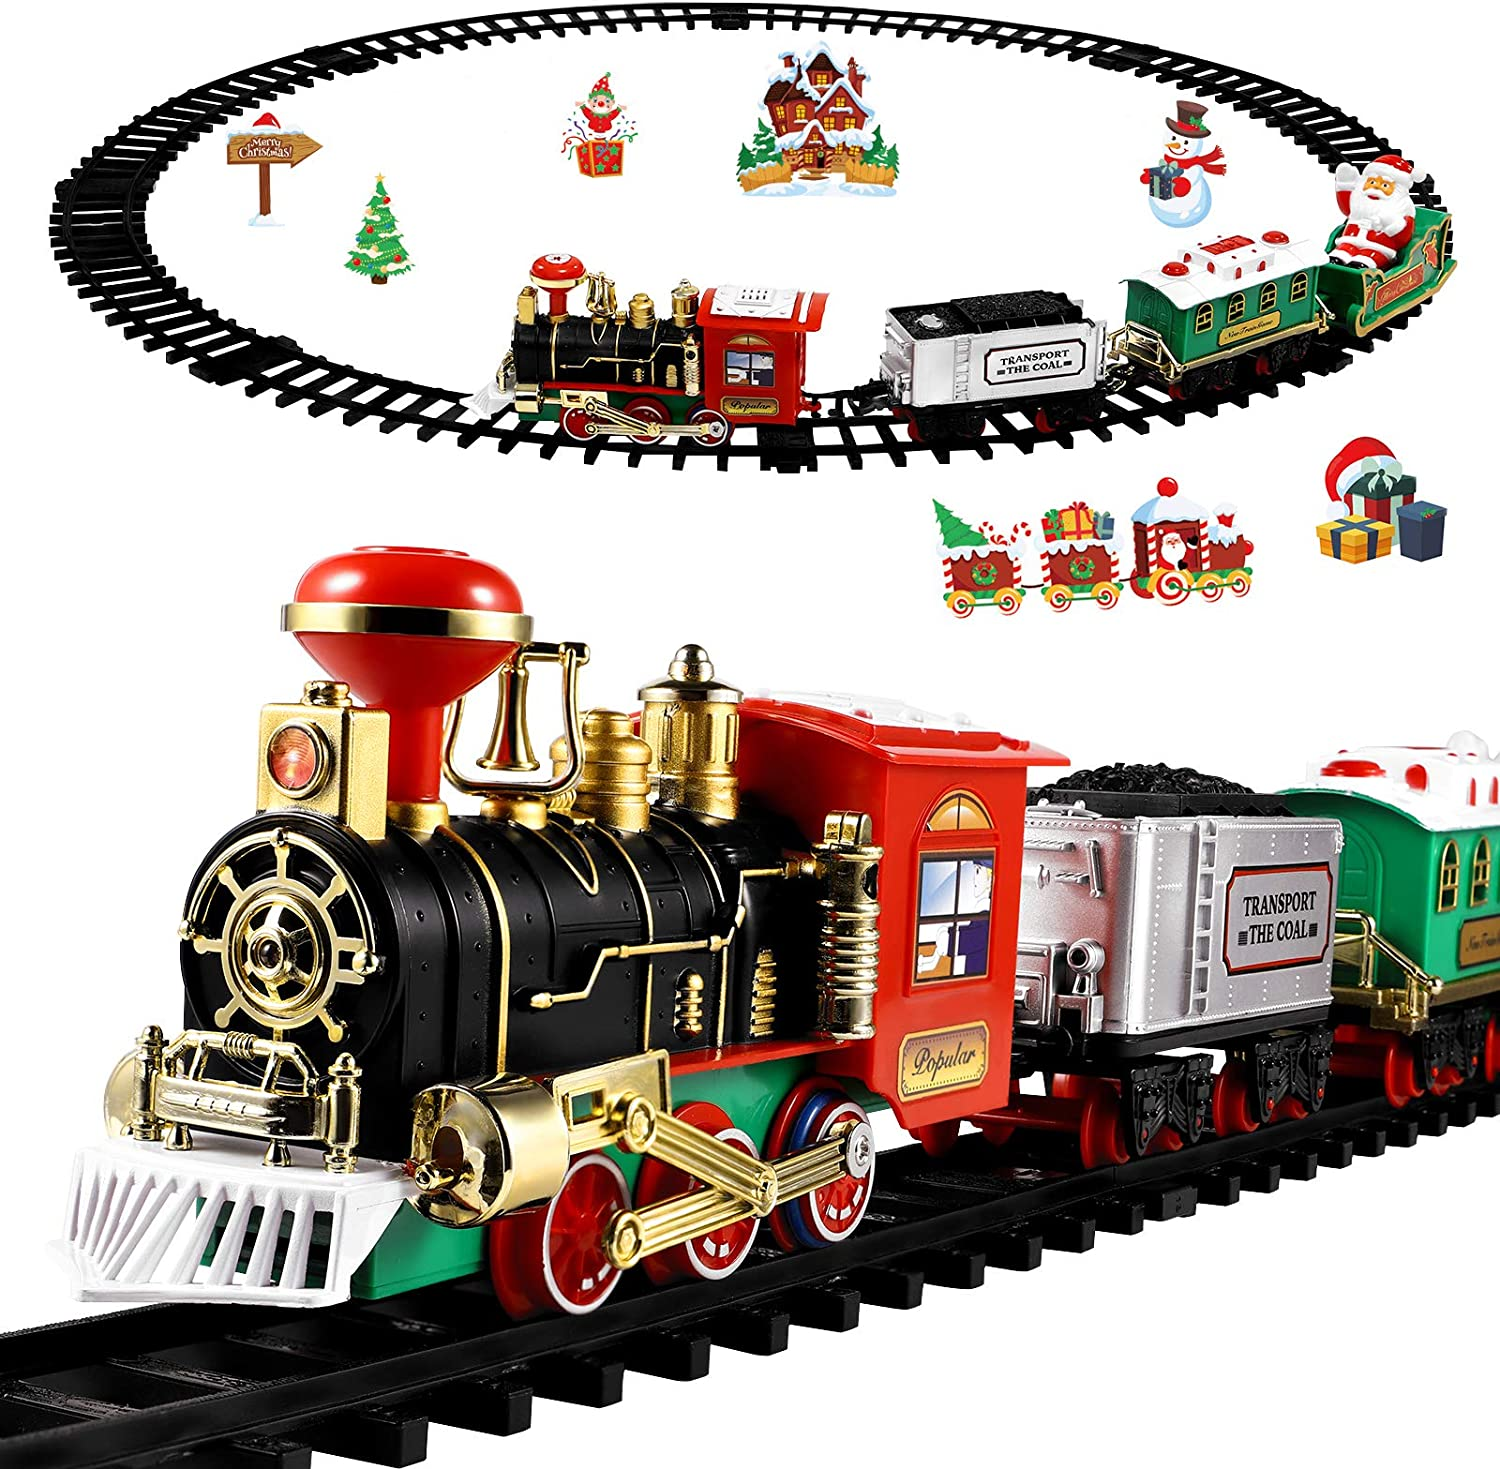 Toyvian Christmas Railway Train Set with Track It is very popular 47.2